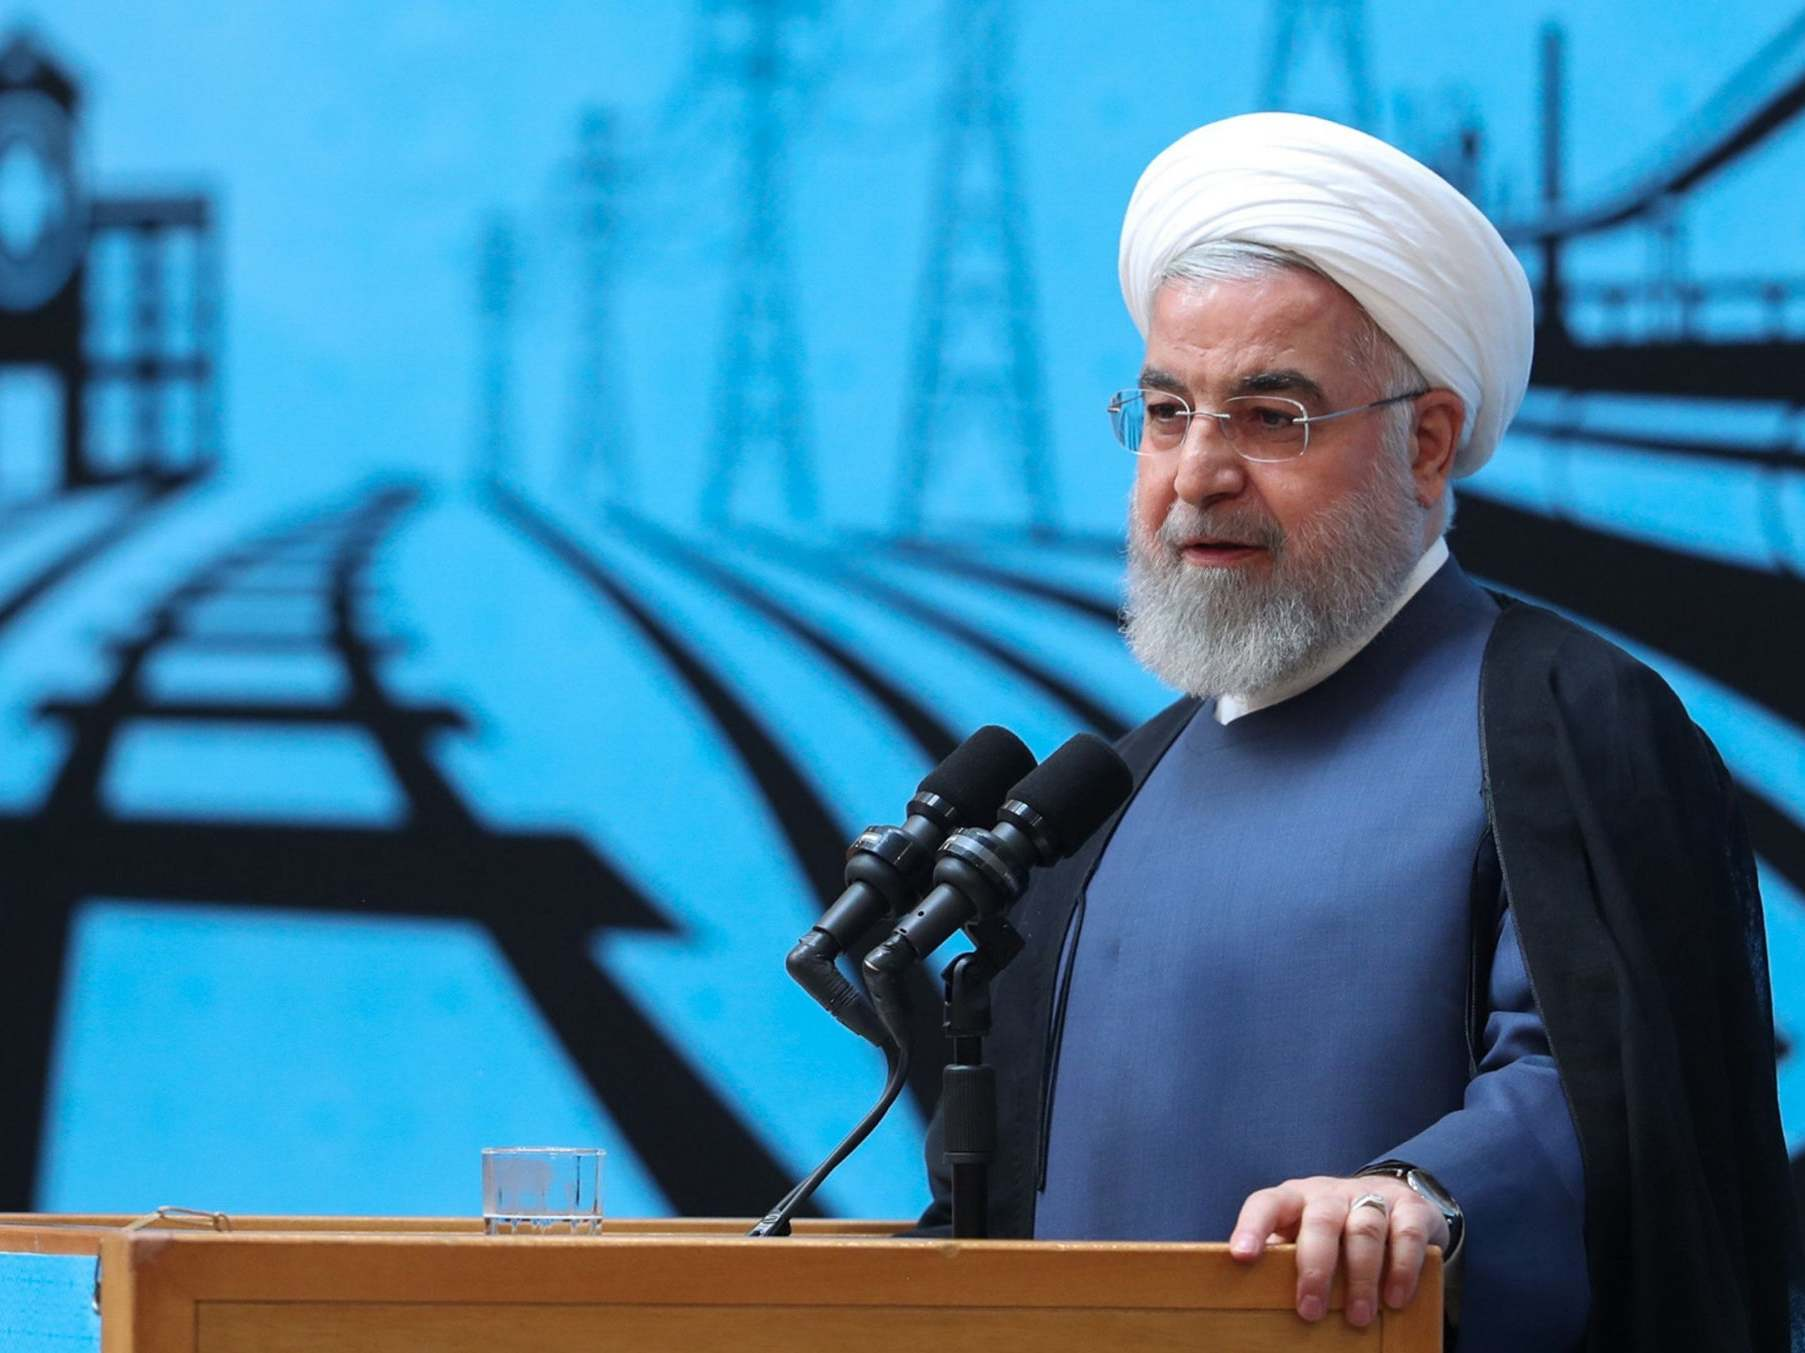 Iran - latest news, breaking stories and comment - The